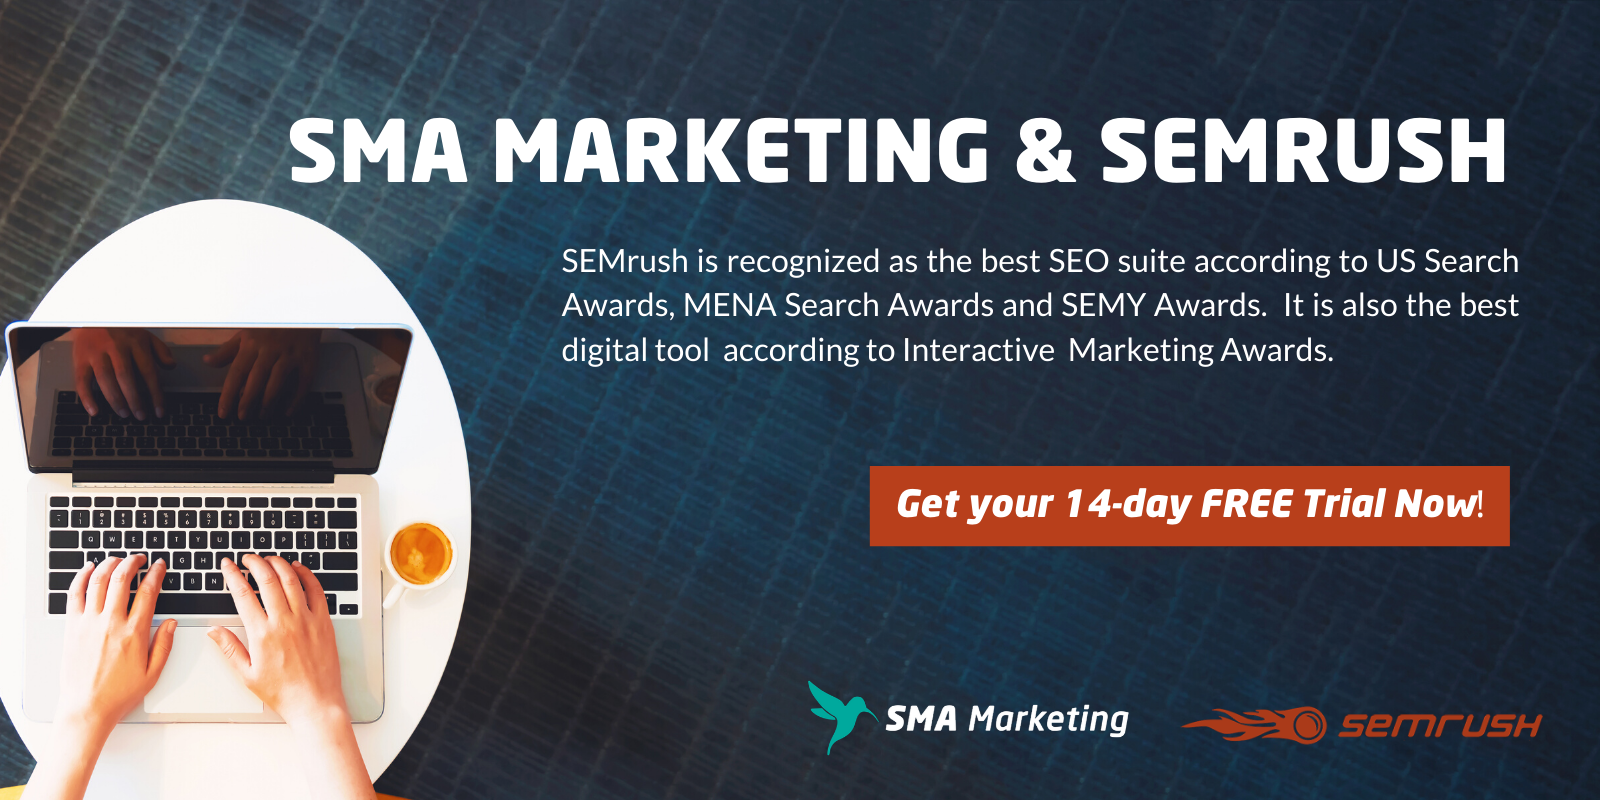 SMA Marketing and SEMRush